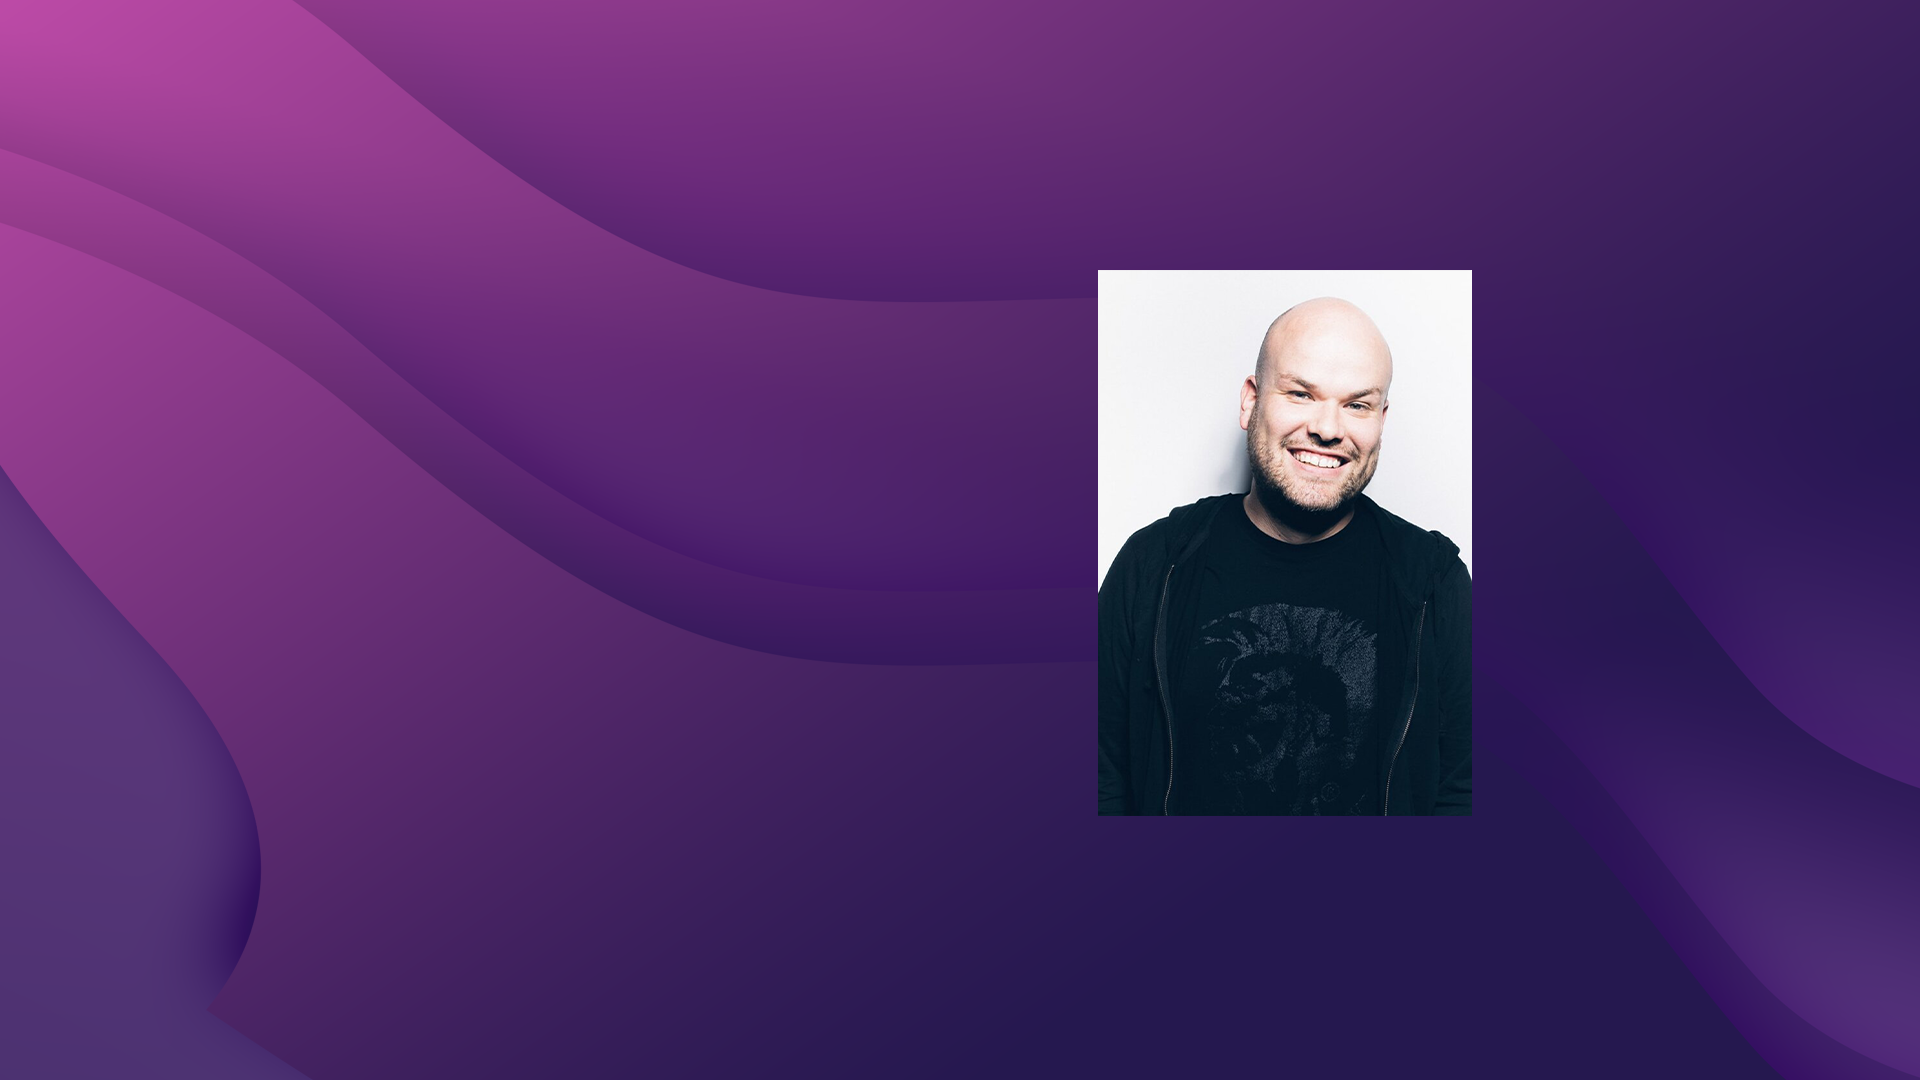 1080: Viberate – The Artist and Event Database Aiming To Be The IMDb for Music